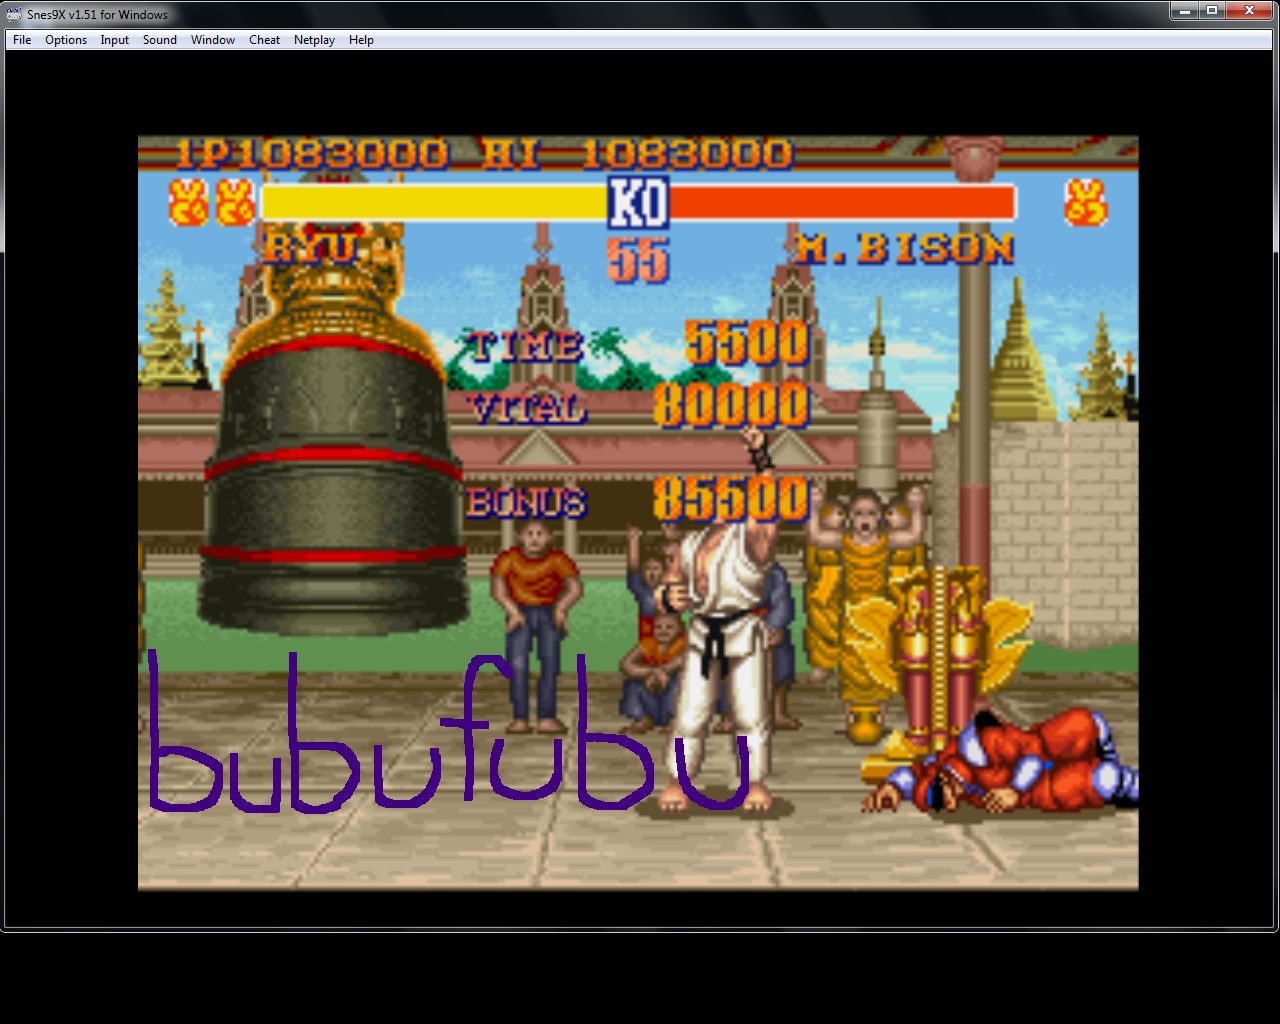 bubufubu: Street Fighter II: The World Warrior (SNES/Super Famicom Emulated) 1,083,000 points on 2015-04-18 12:56:19